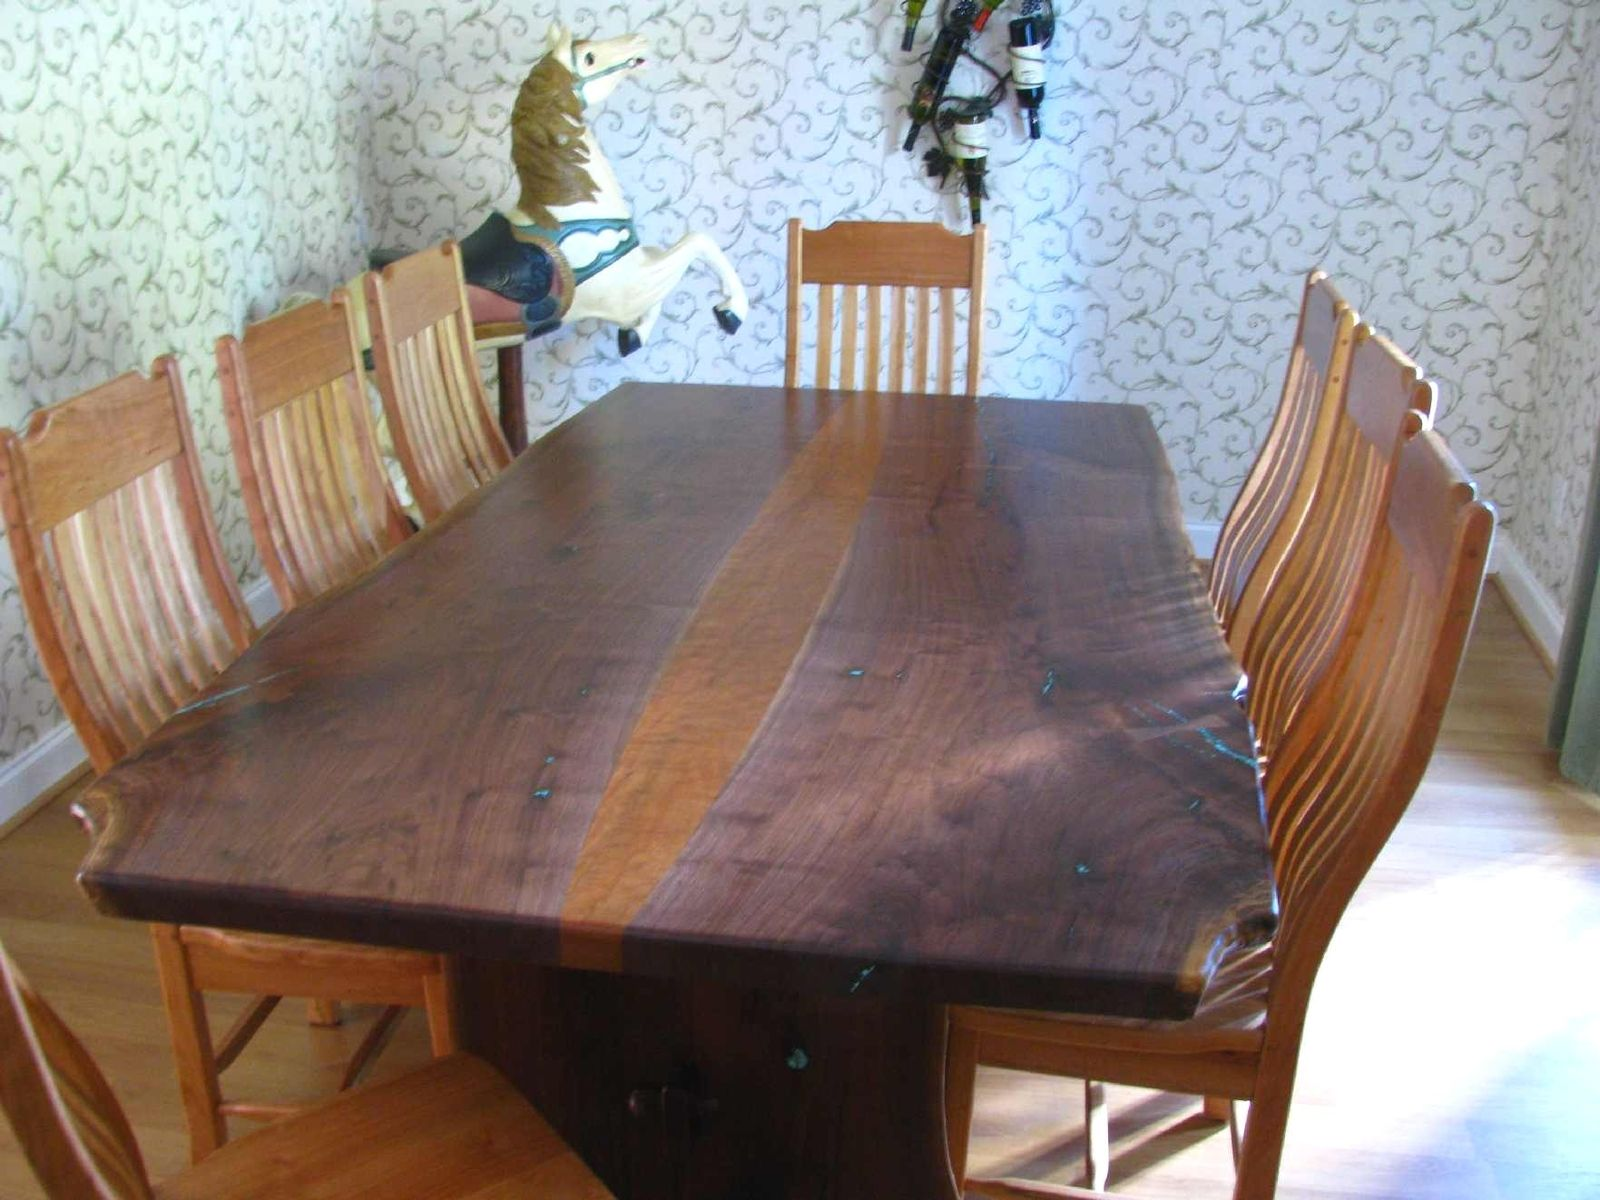 table live cut wood dining edge accent building slab burl coffee full size seater wooden bedside cabinets small mid century door stopper legs and bases parker furniture target